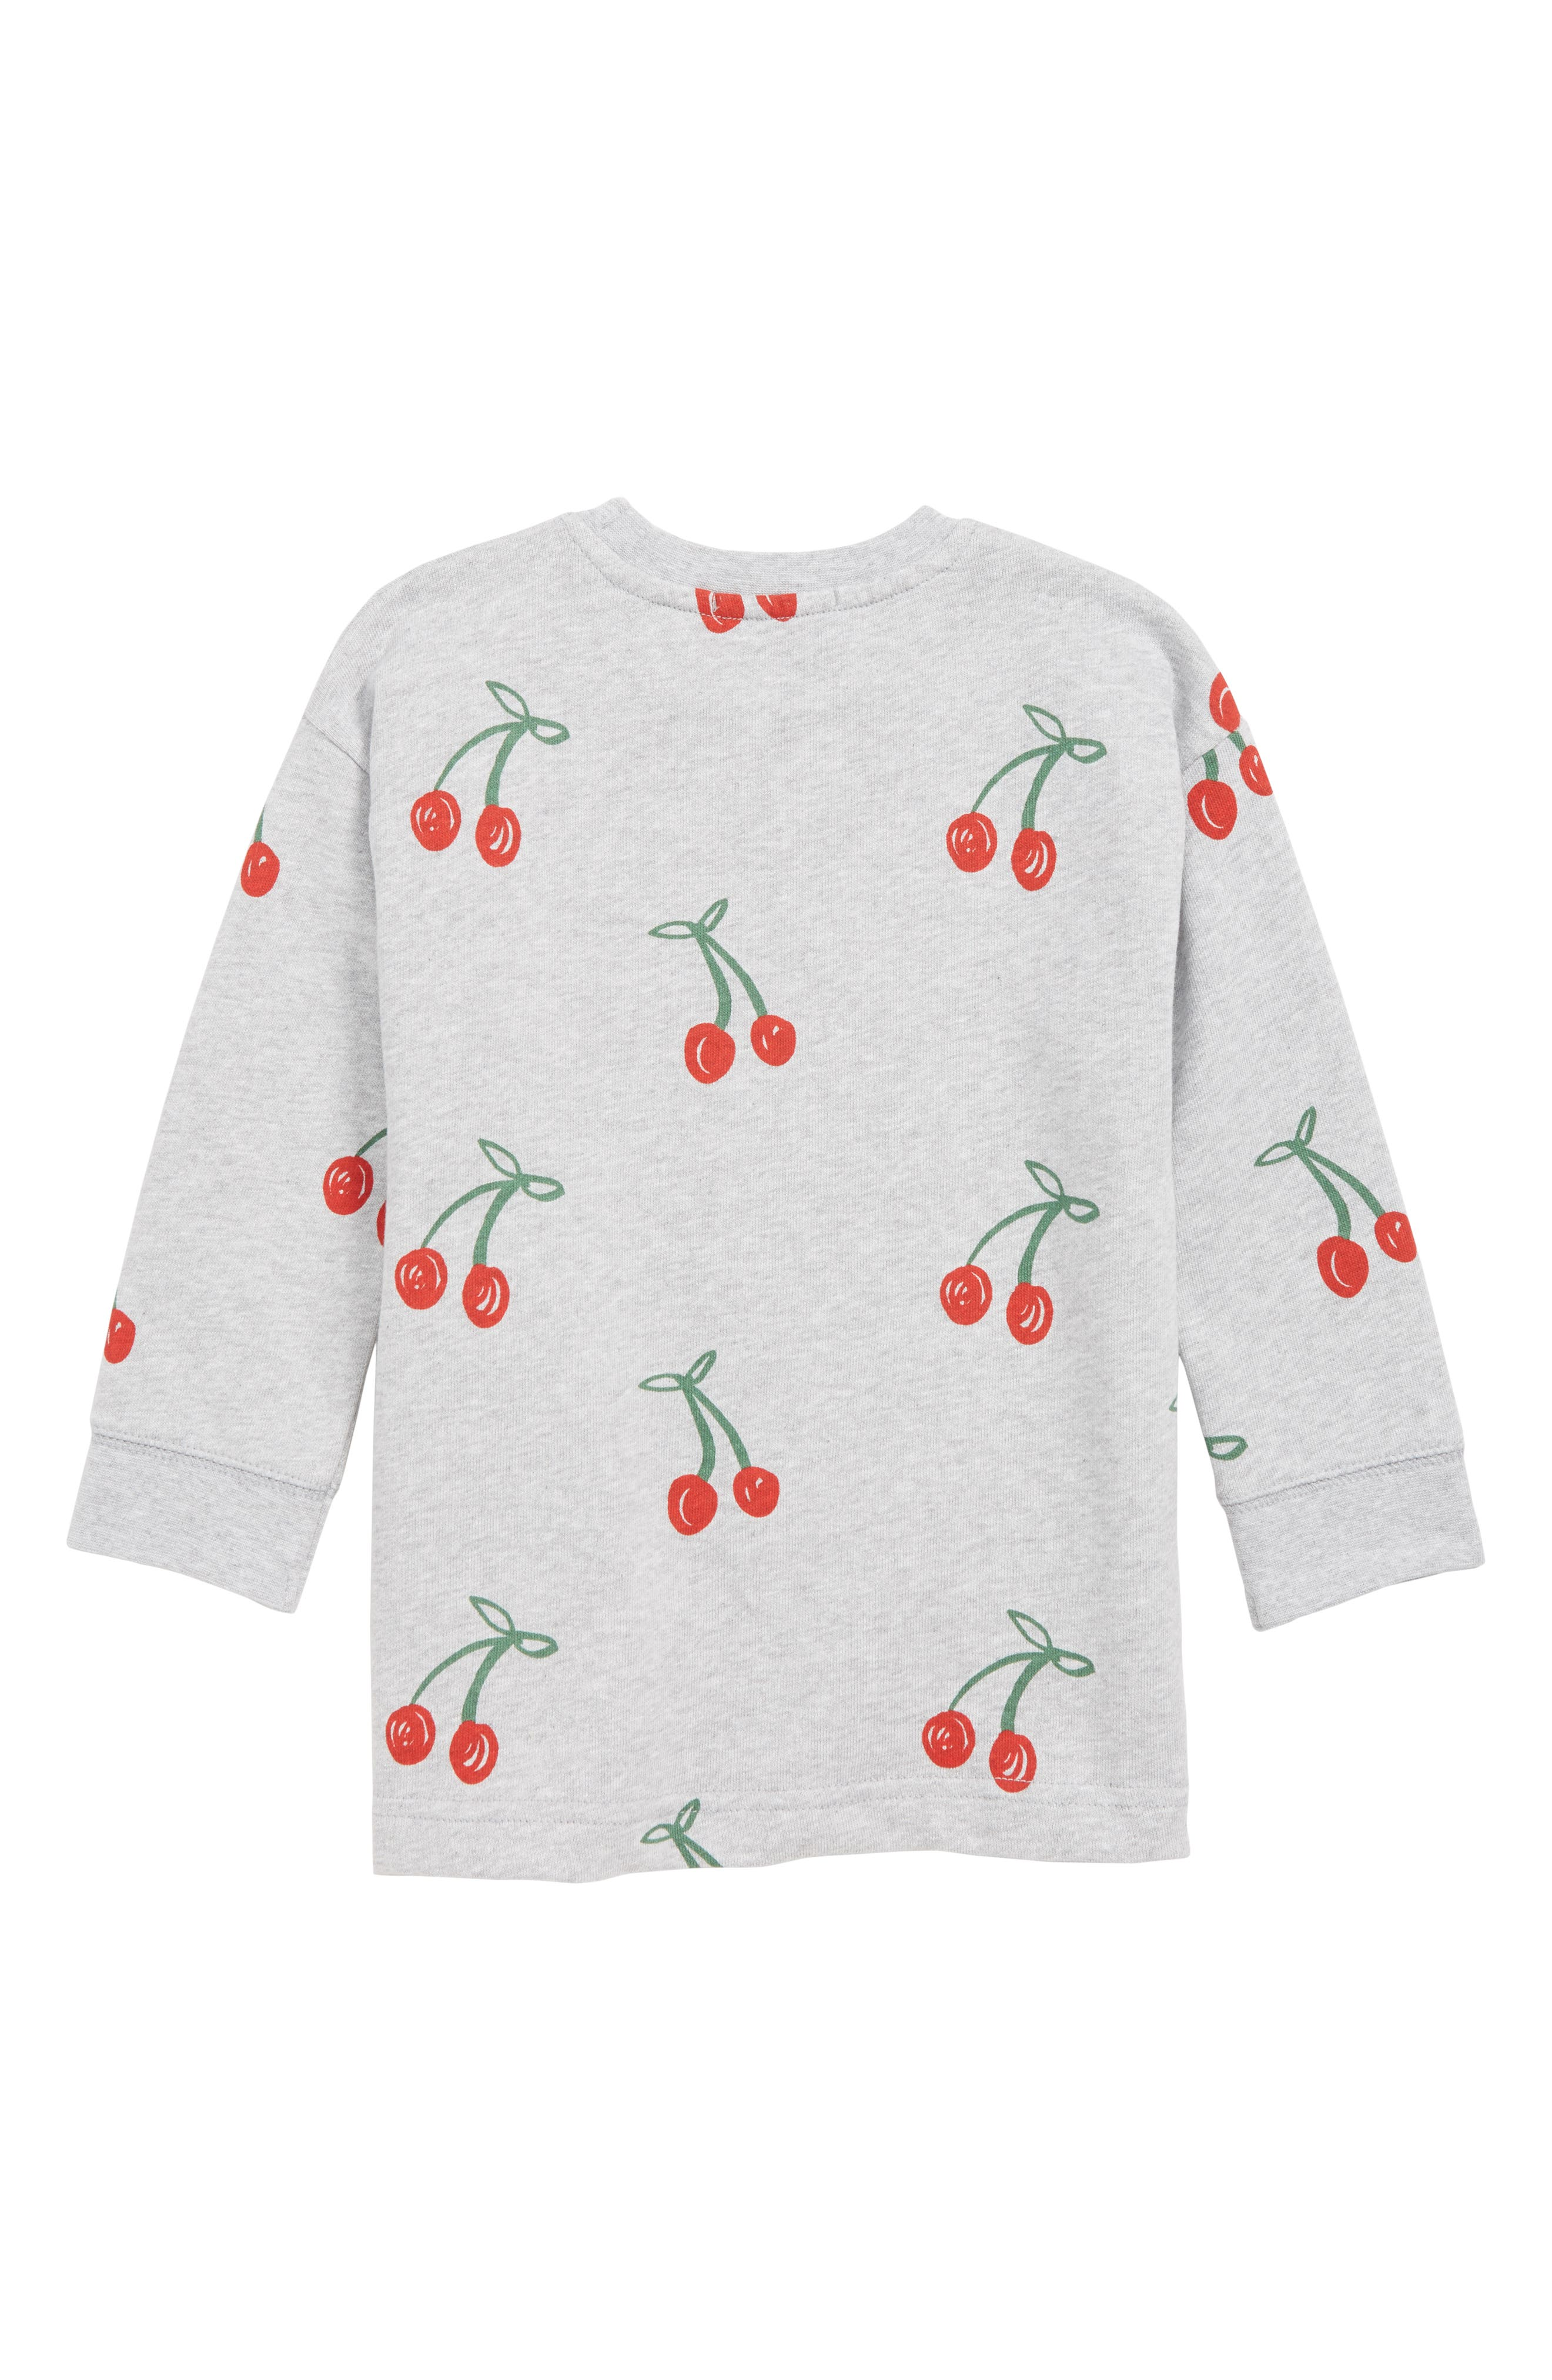 STELLA MCCARTNEY KIDS, Stella McCartney Cherry Organic Cotton Sweatshirt Dress, Alternate thumbnail 2, color, GREY